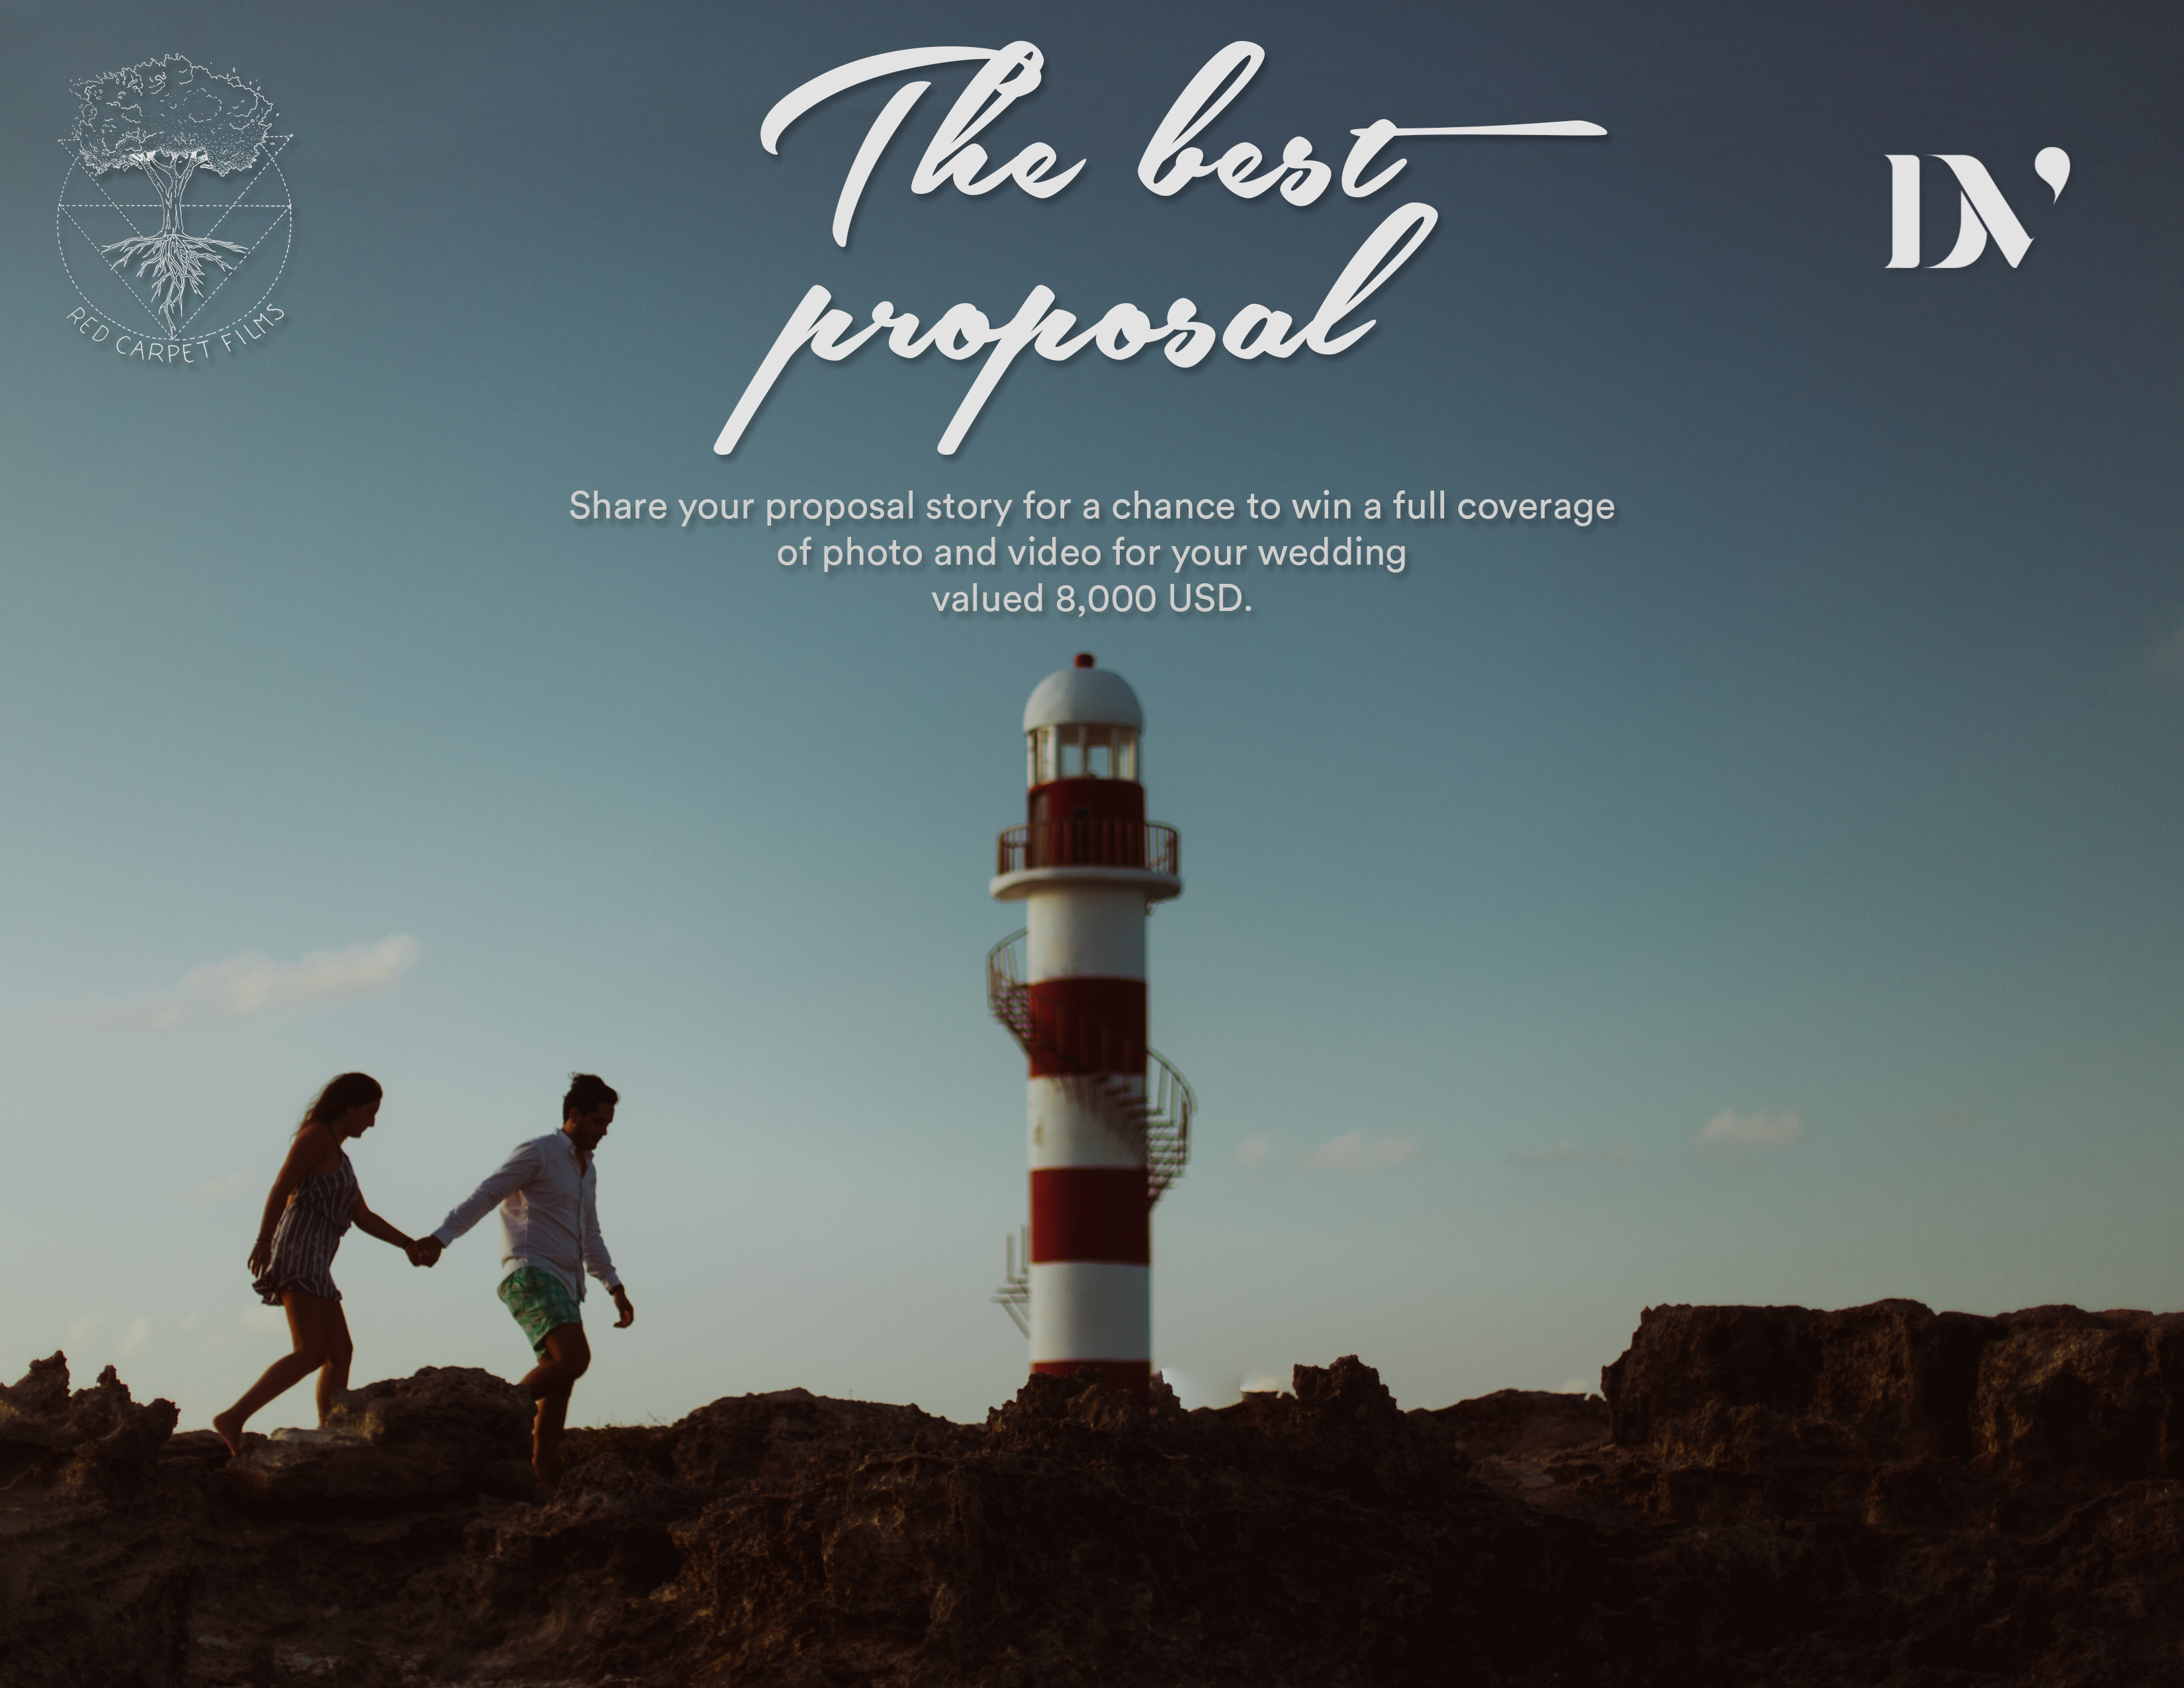 The Best Proposal 2019 Promotion by Daniela Villarreal Photographer and RED Carpet Films, Destination Wedding Blog Adriana Weddings, Mexico, Mexico weddings